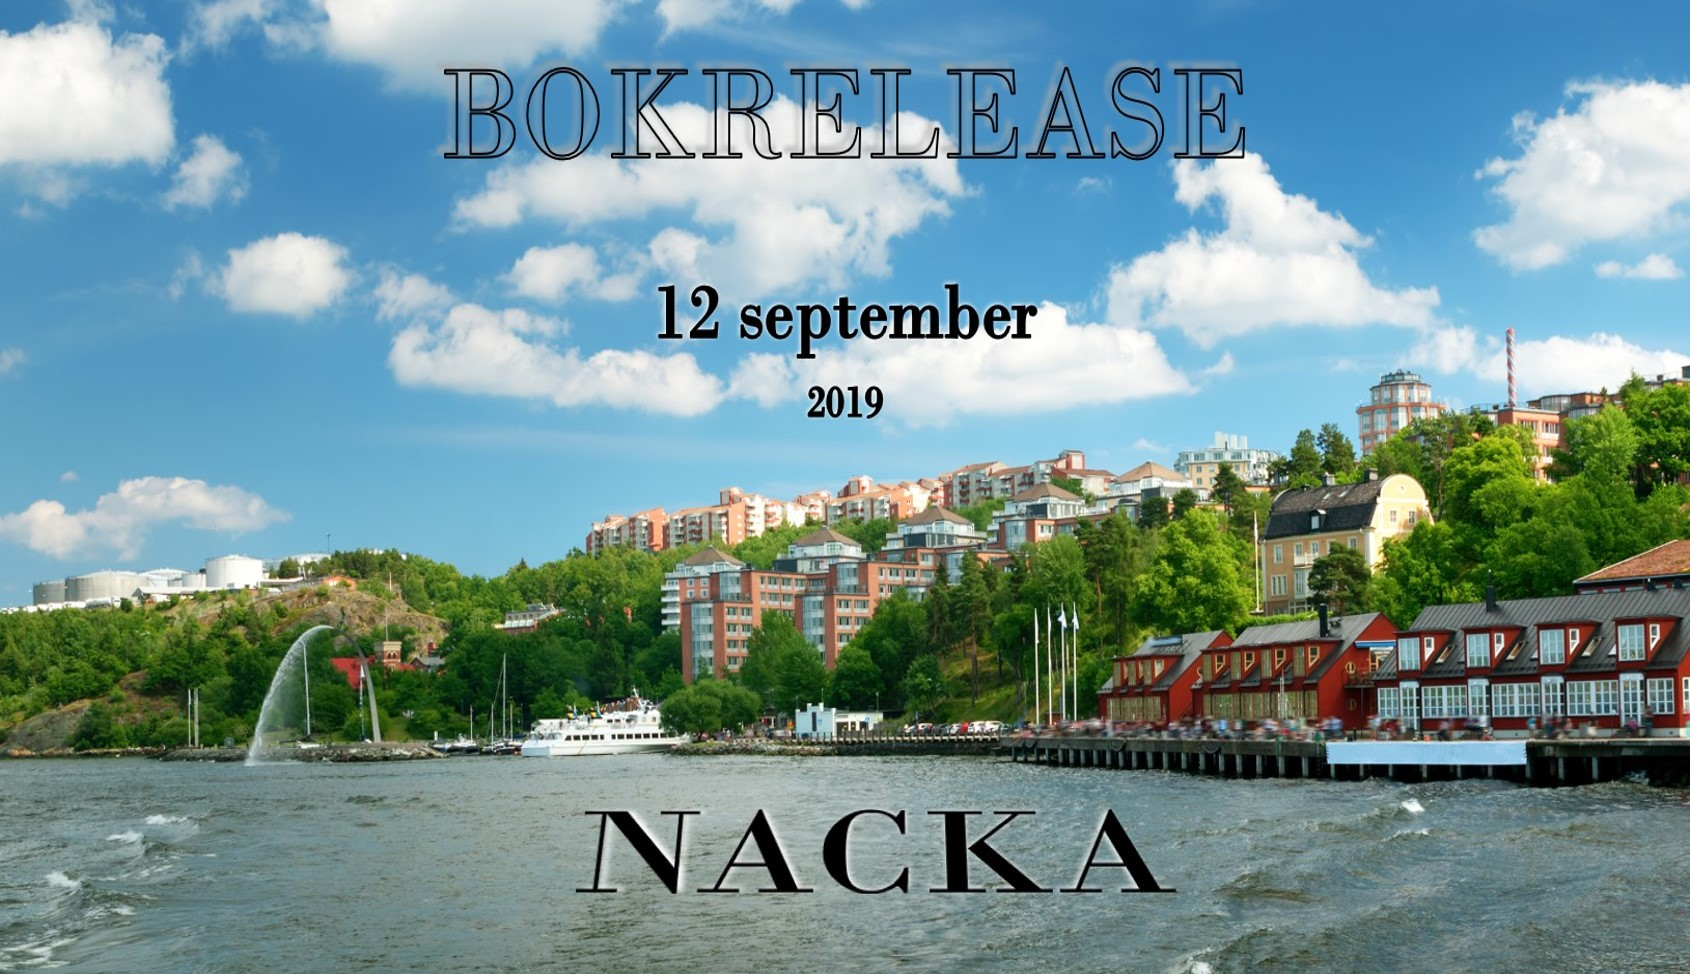 NACKA 12 september 2019jpg